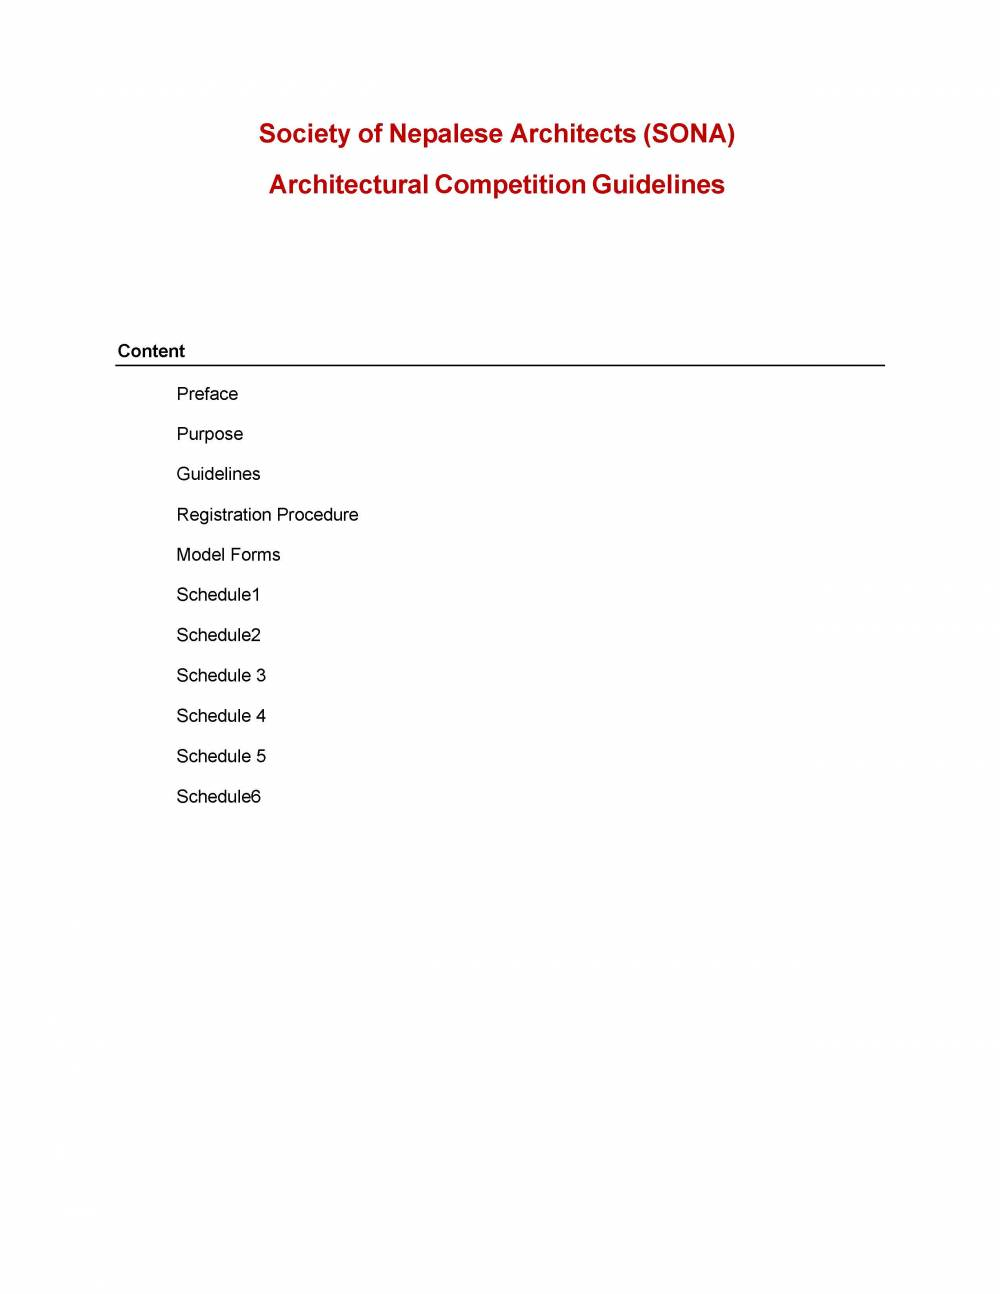 SONA  Architectural Competition Guidelines